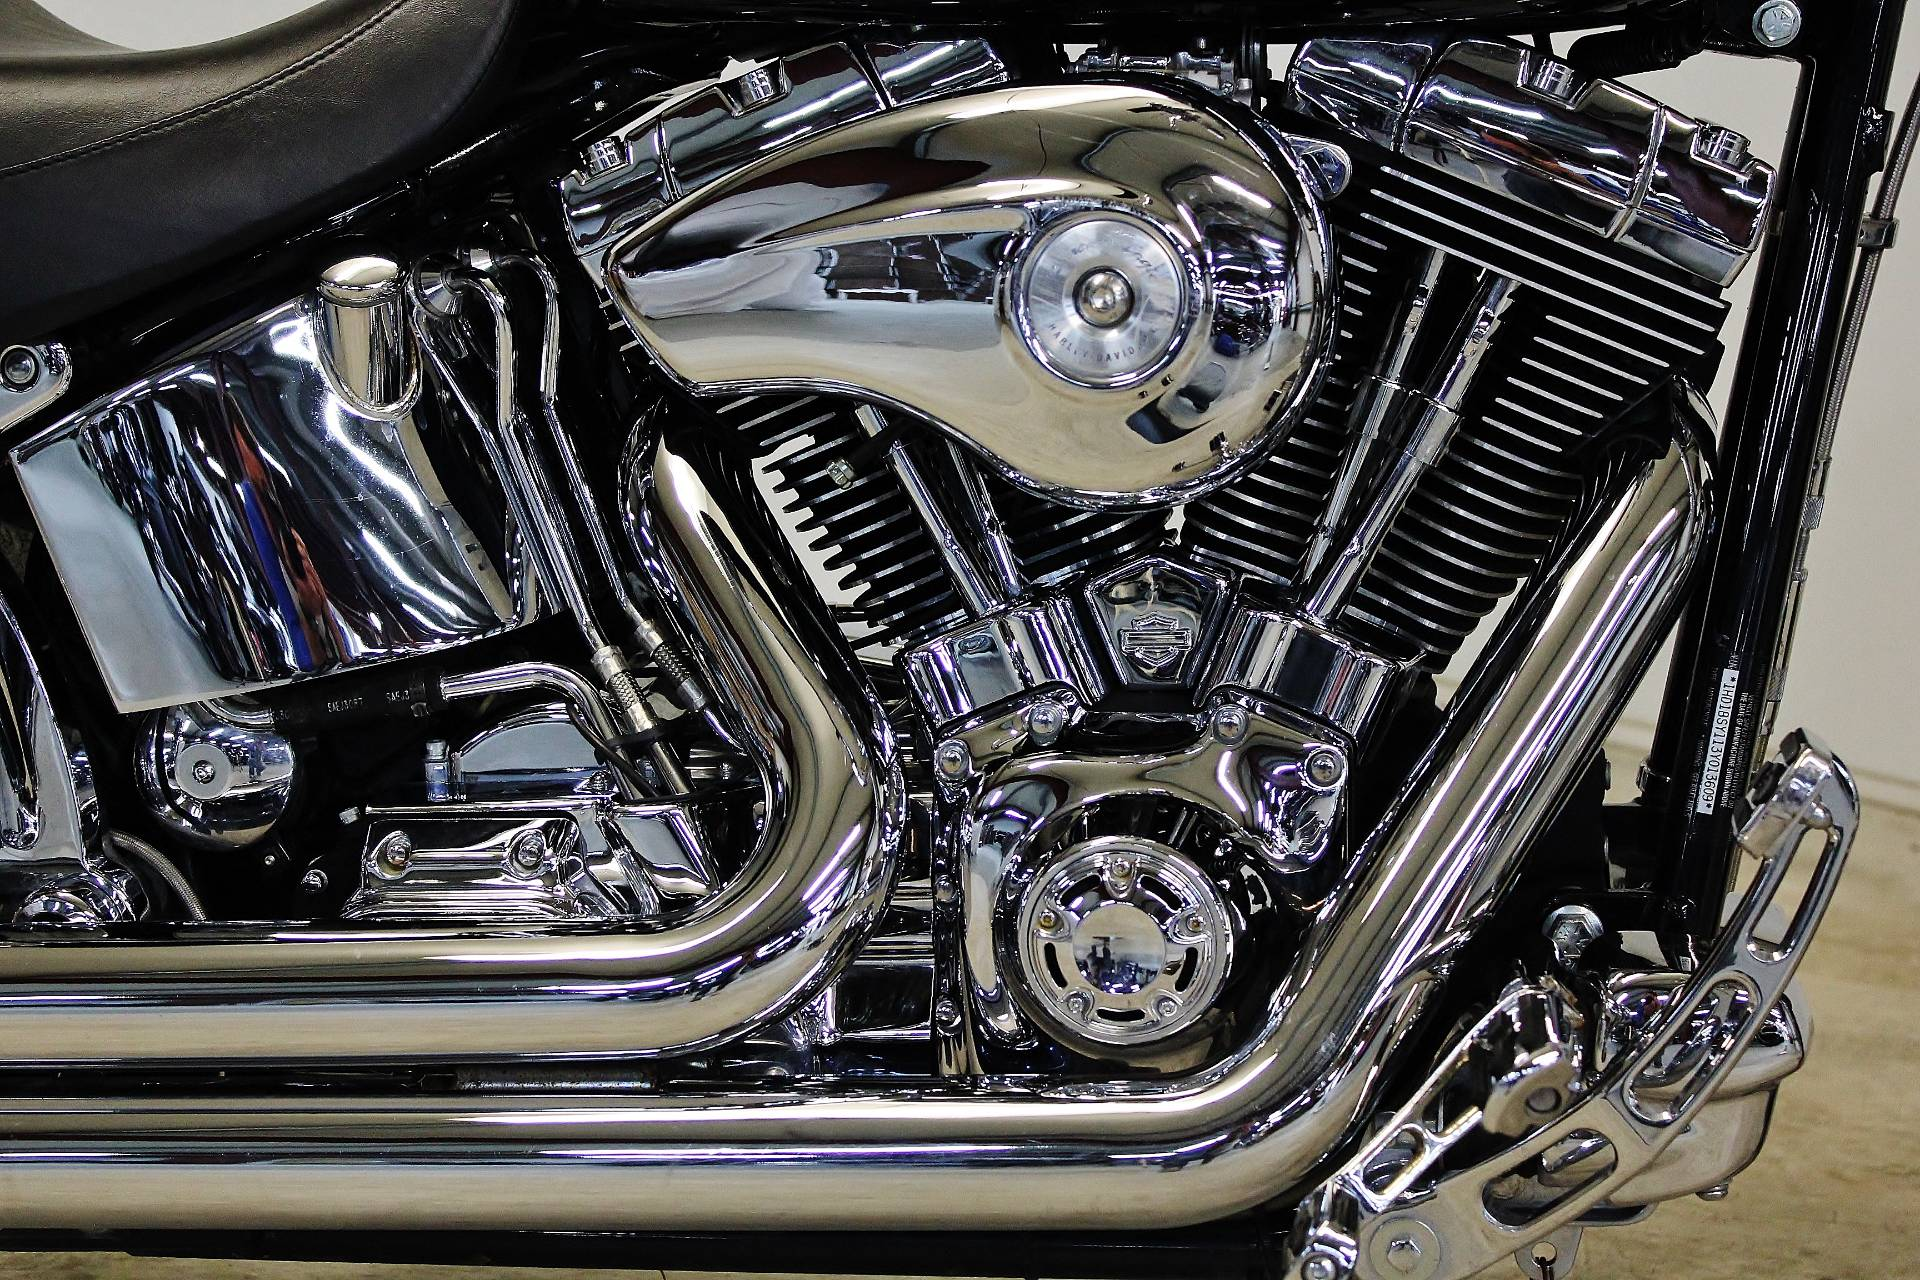 2003 Harley-Davidson FXSTD/FXSTDI Softail®  Deuce™ in Pittsfield, Massachusetts